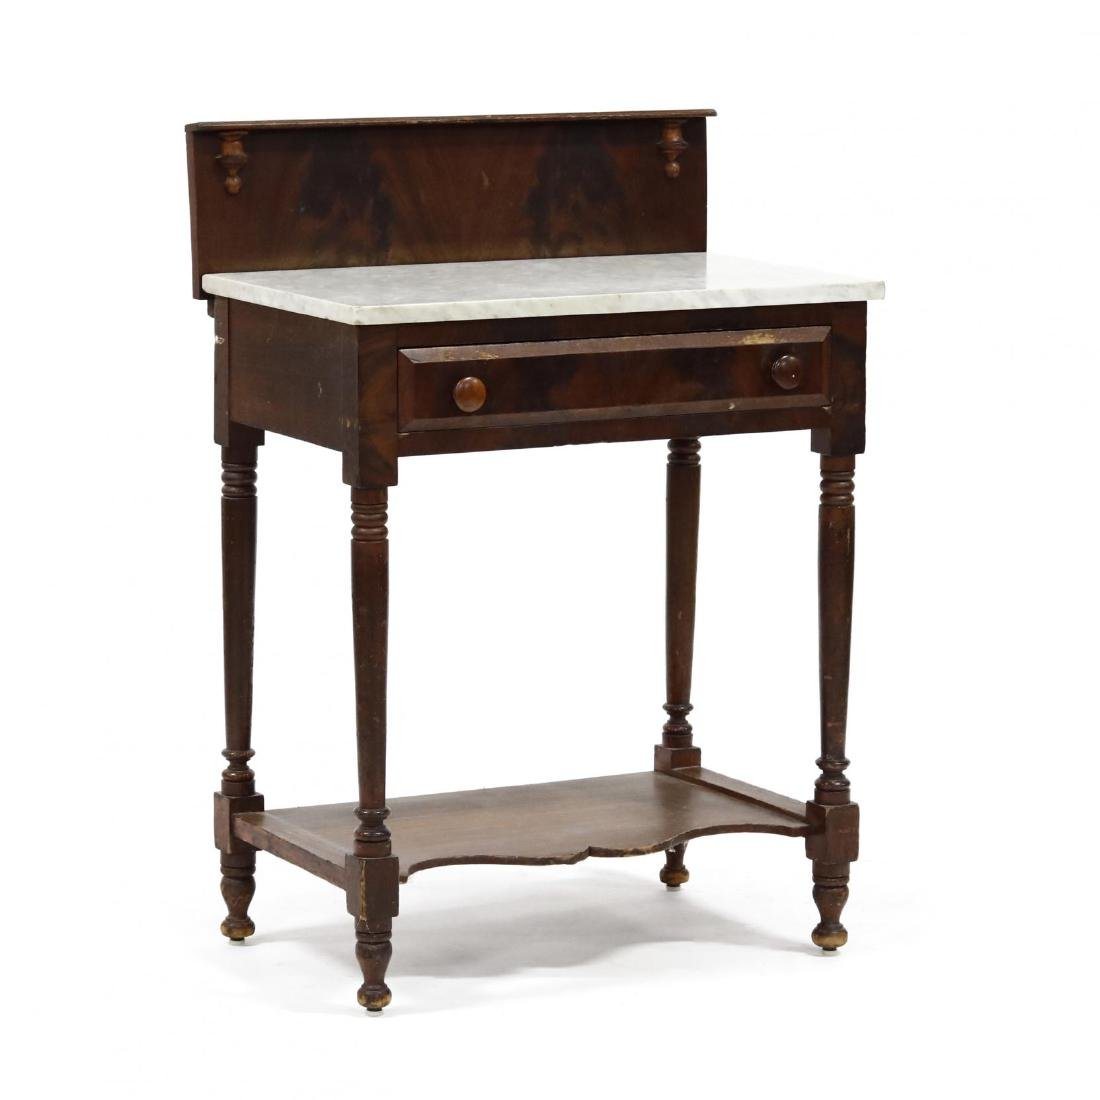 American Classical Marble Top Wash Stand